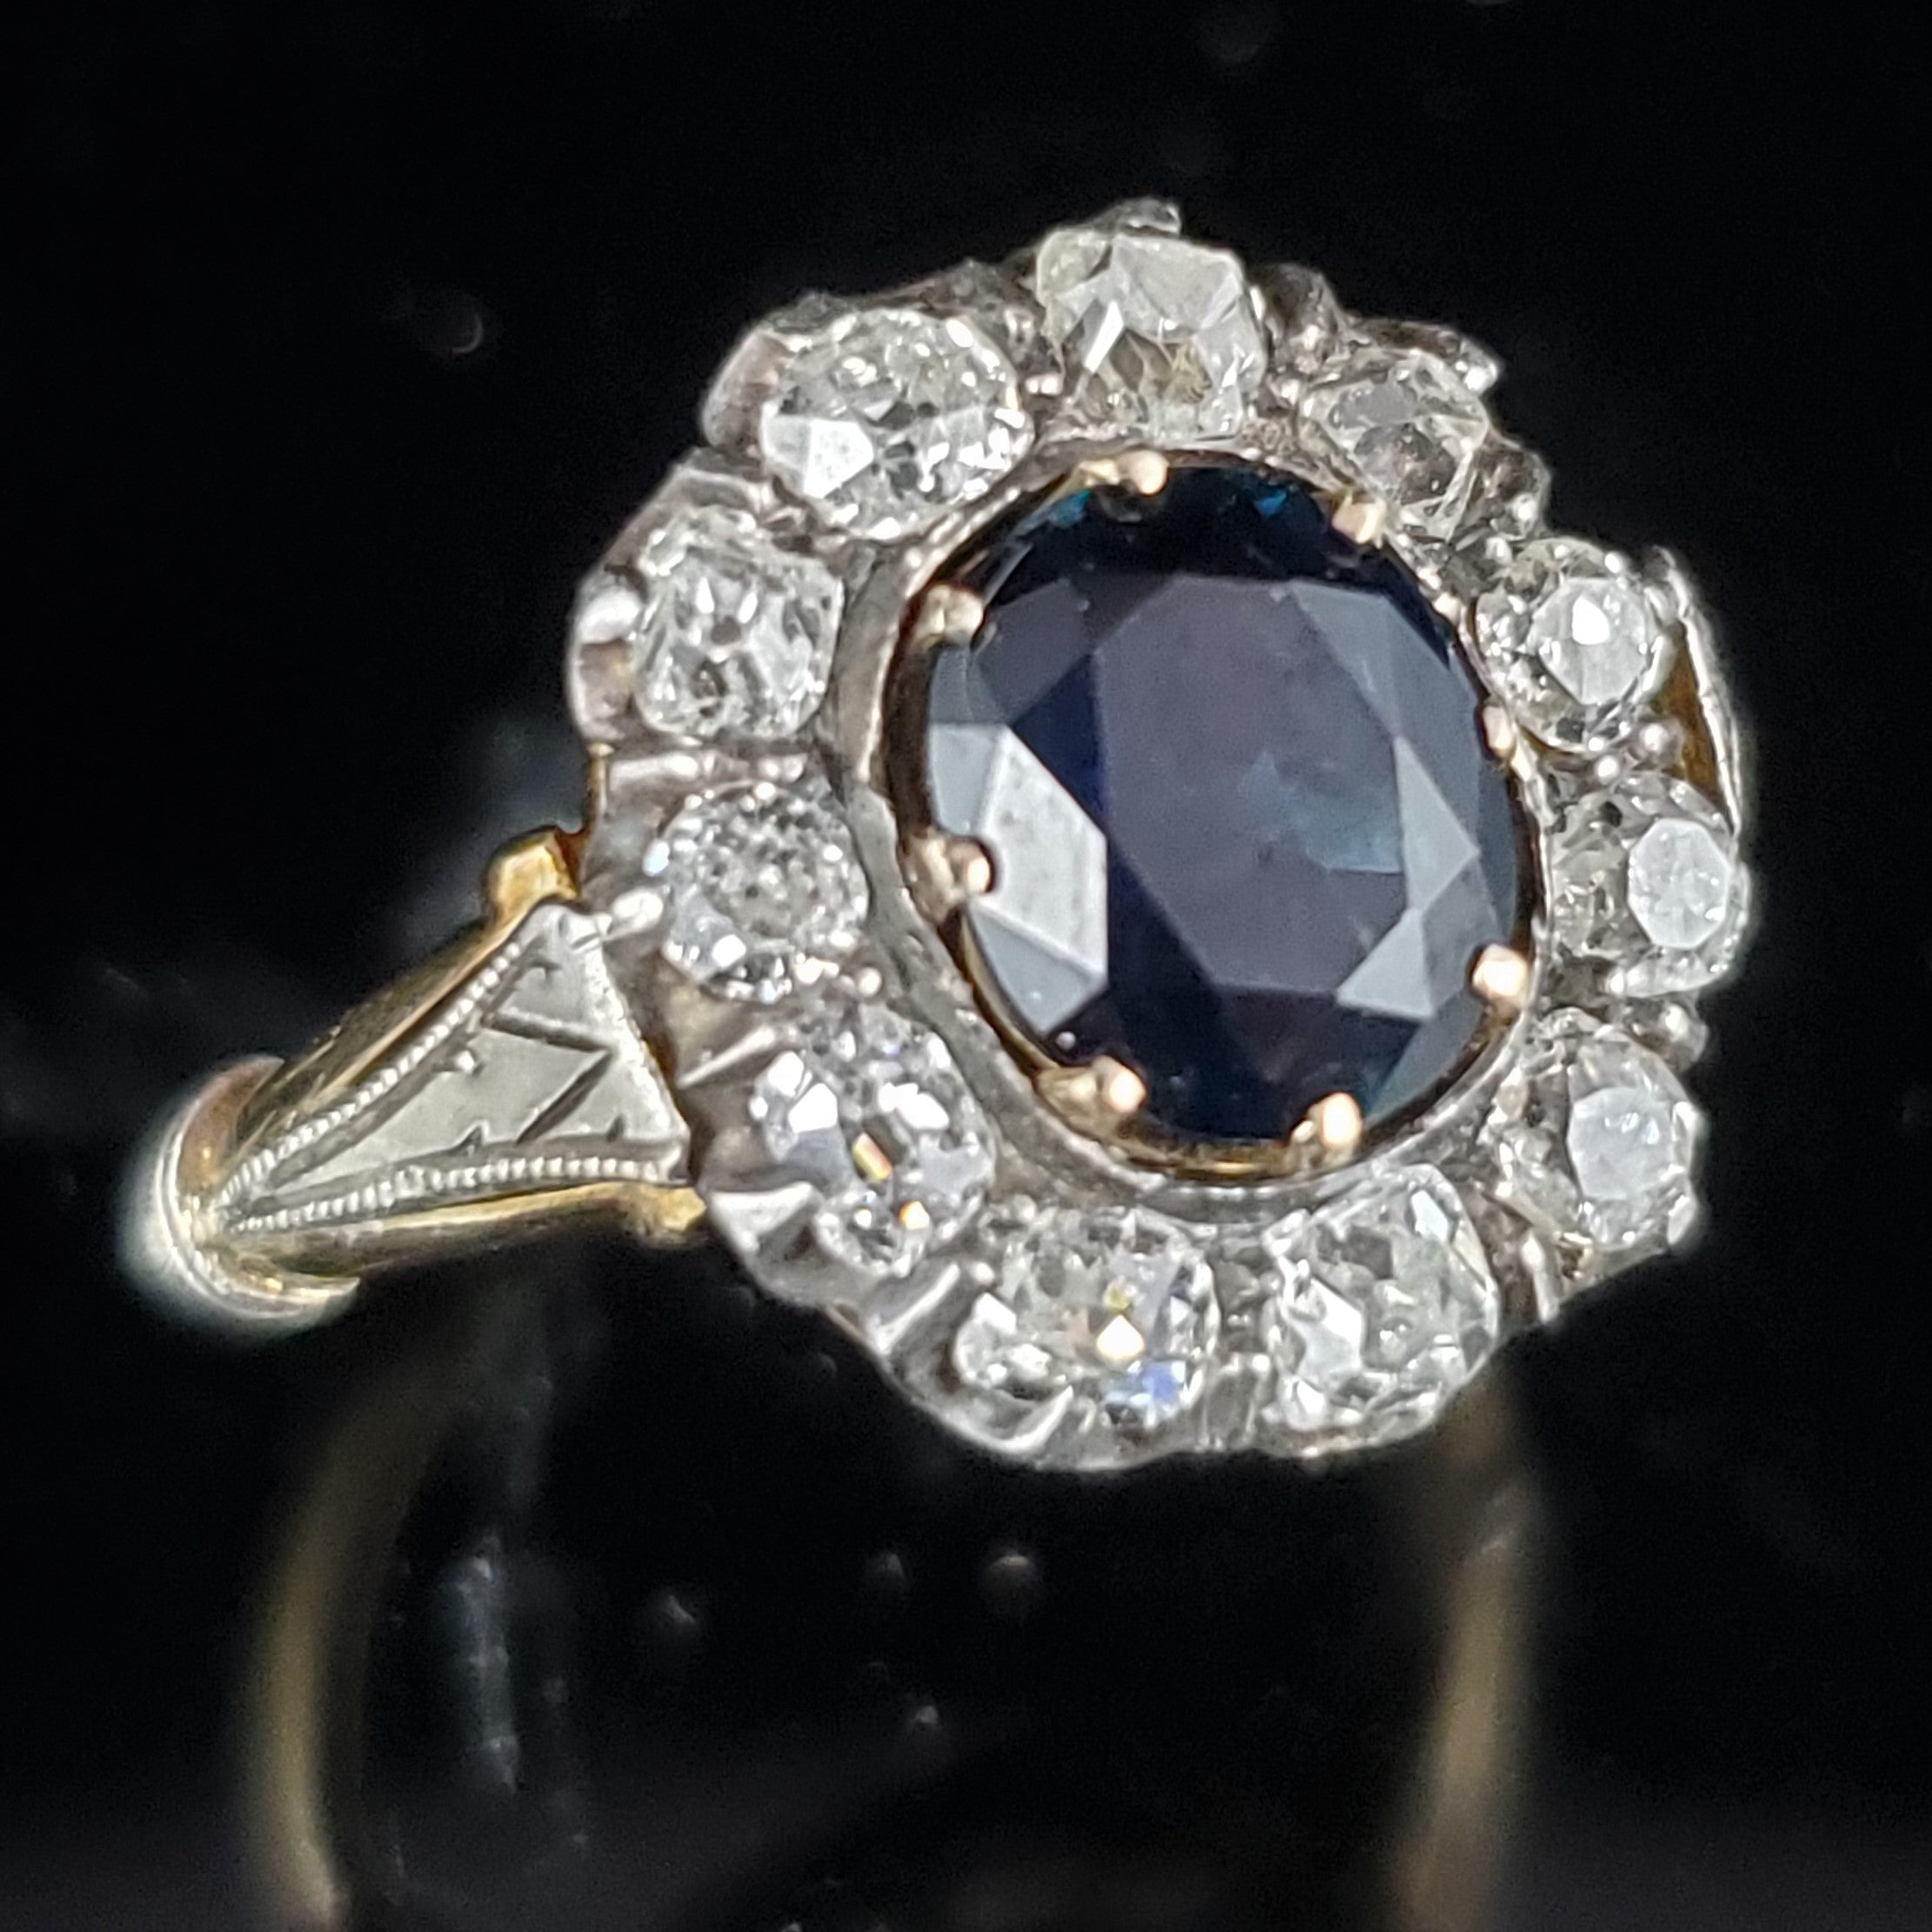 0f665e837b88d The Madison - Edwardian No Heat Sapphire Old Cut Diamonds 18k Gold Ring GIA  Report Included